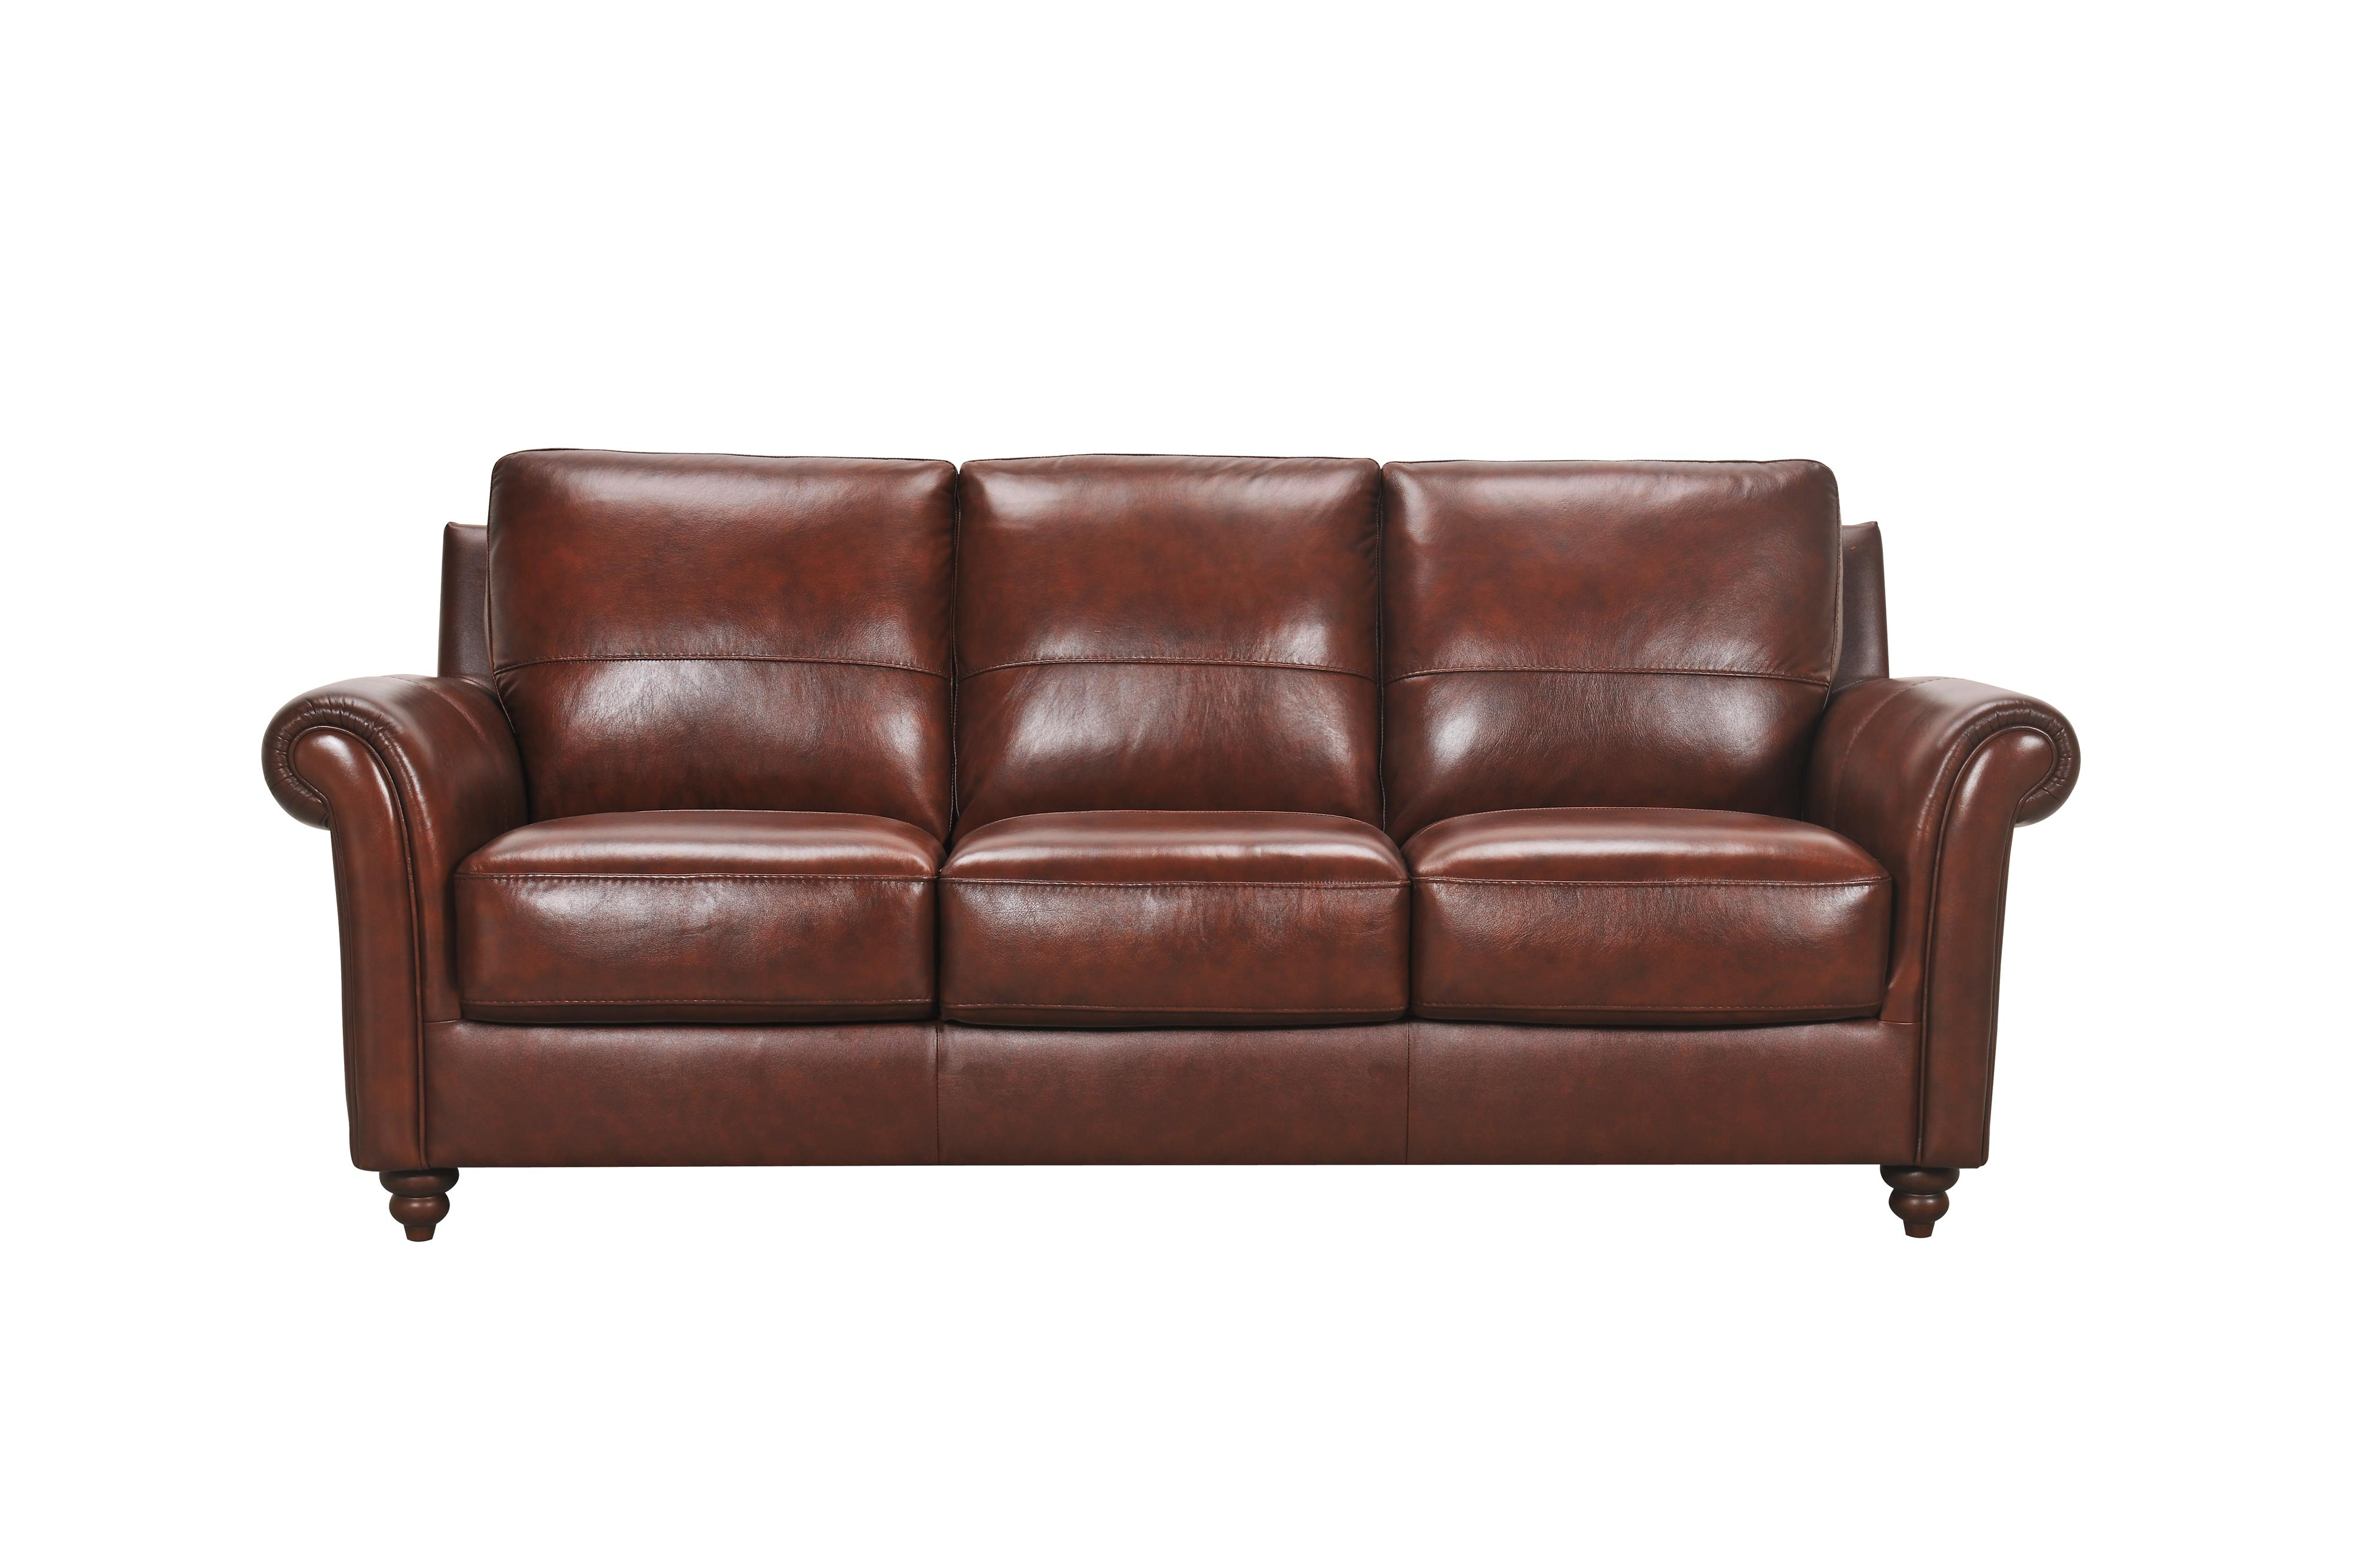 Violino leather sofa sofa review for Sofa company